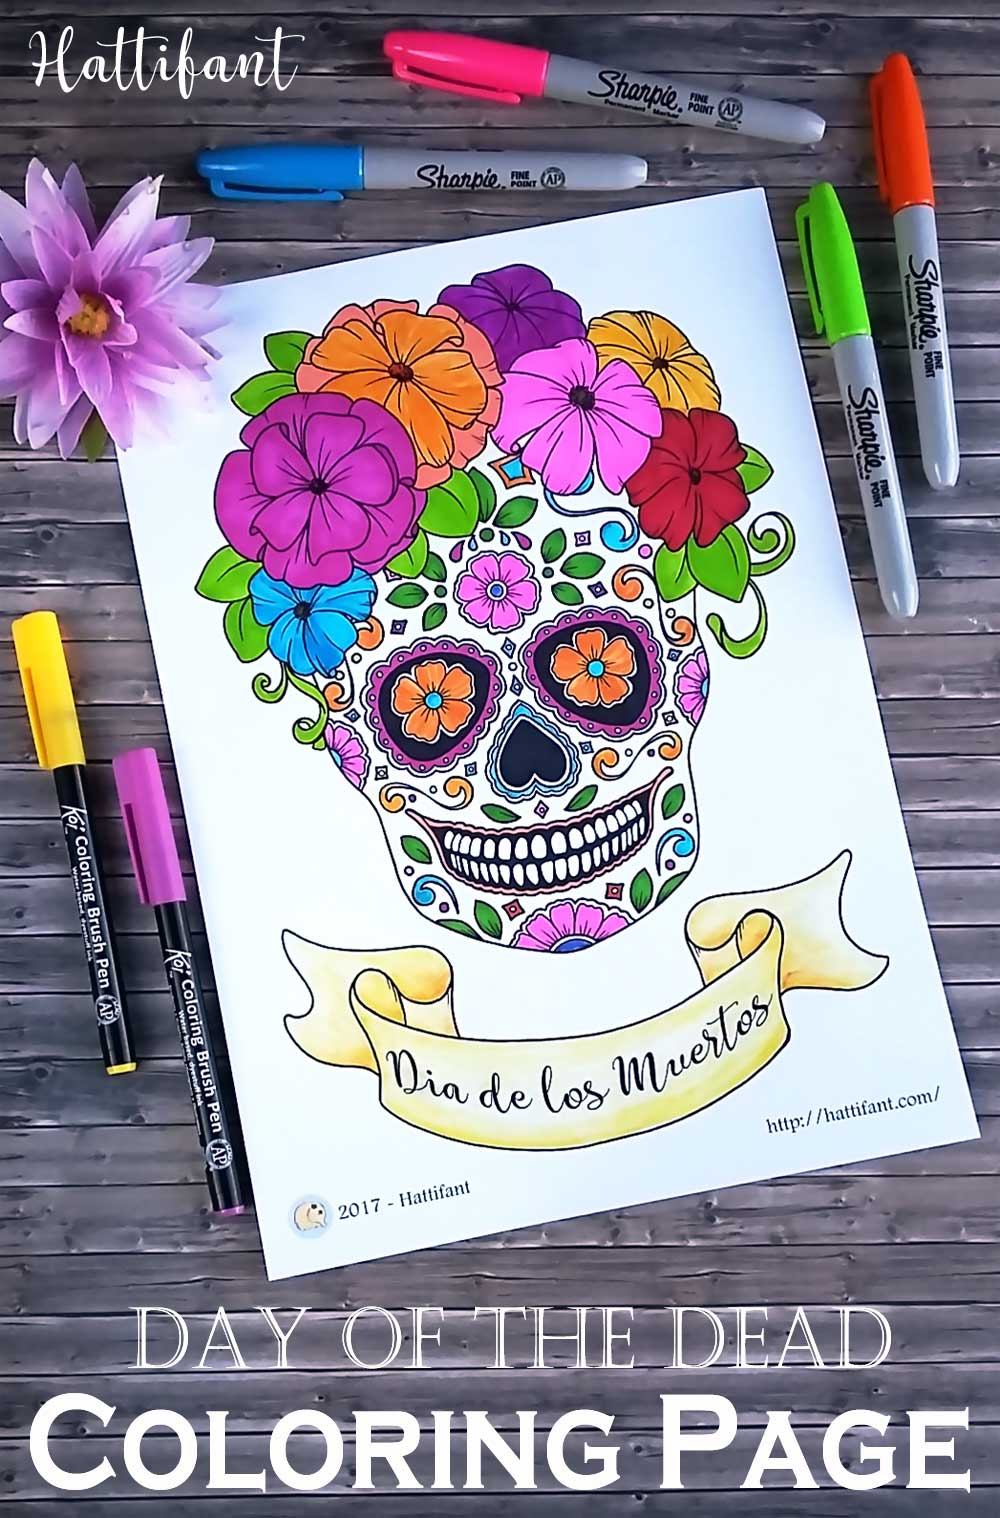 Hattifant's Day of the Dead Sugar Skull Coloring Page